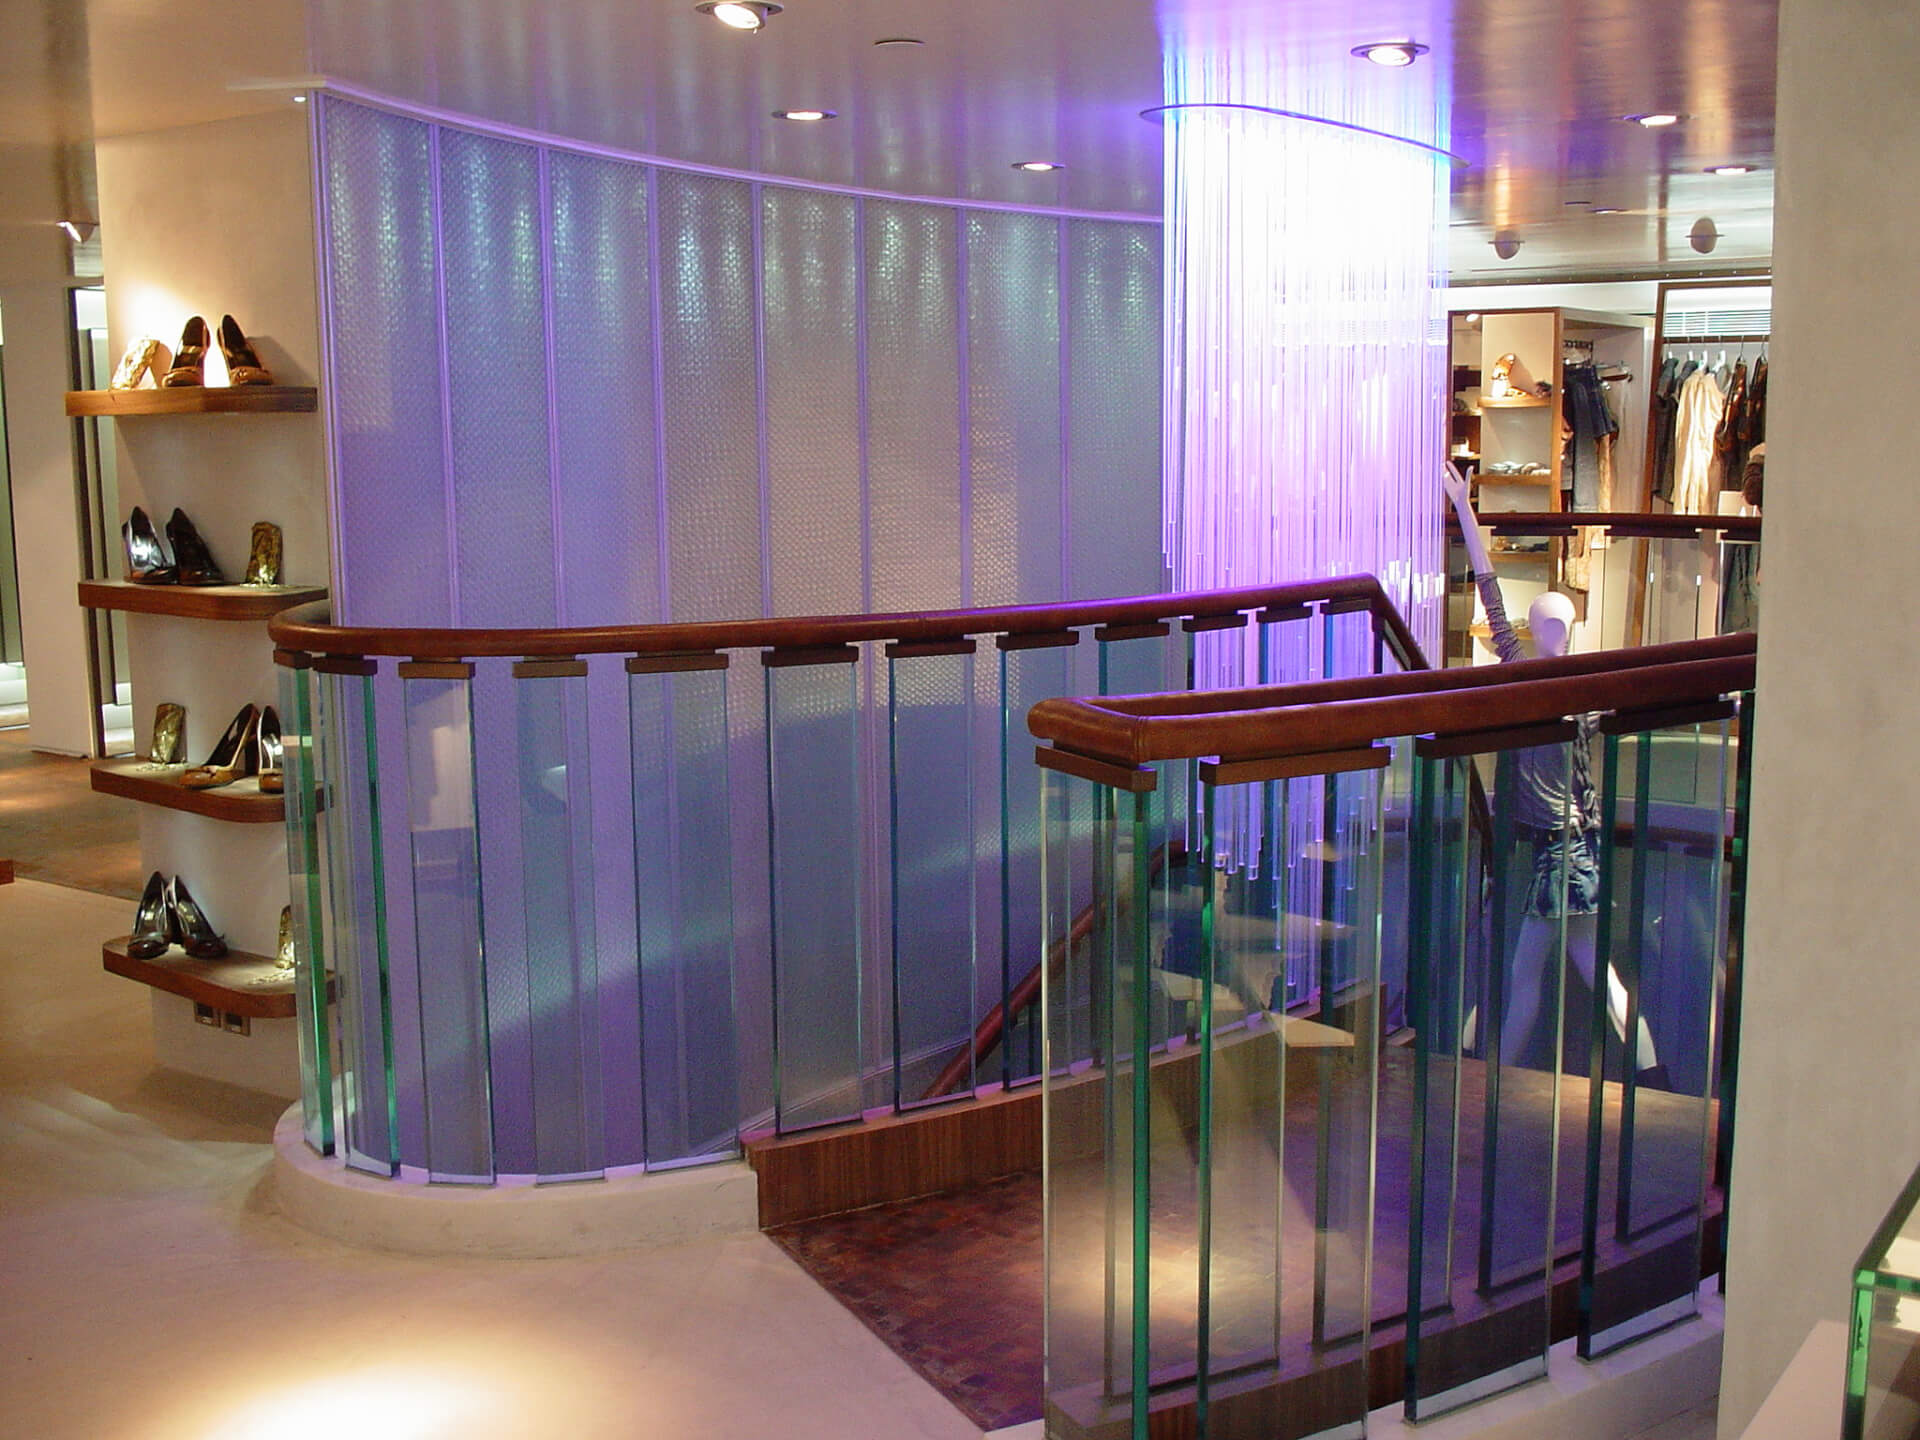 Architectural applications & bespoke furniture - Gas in Hong Kong